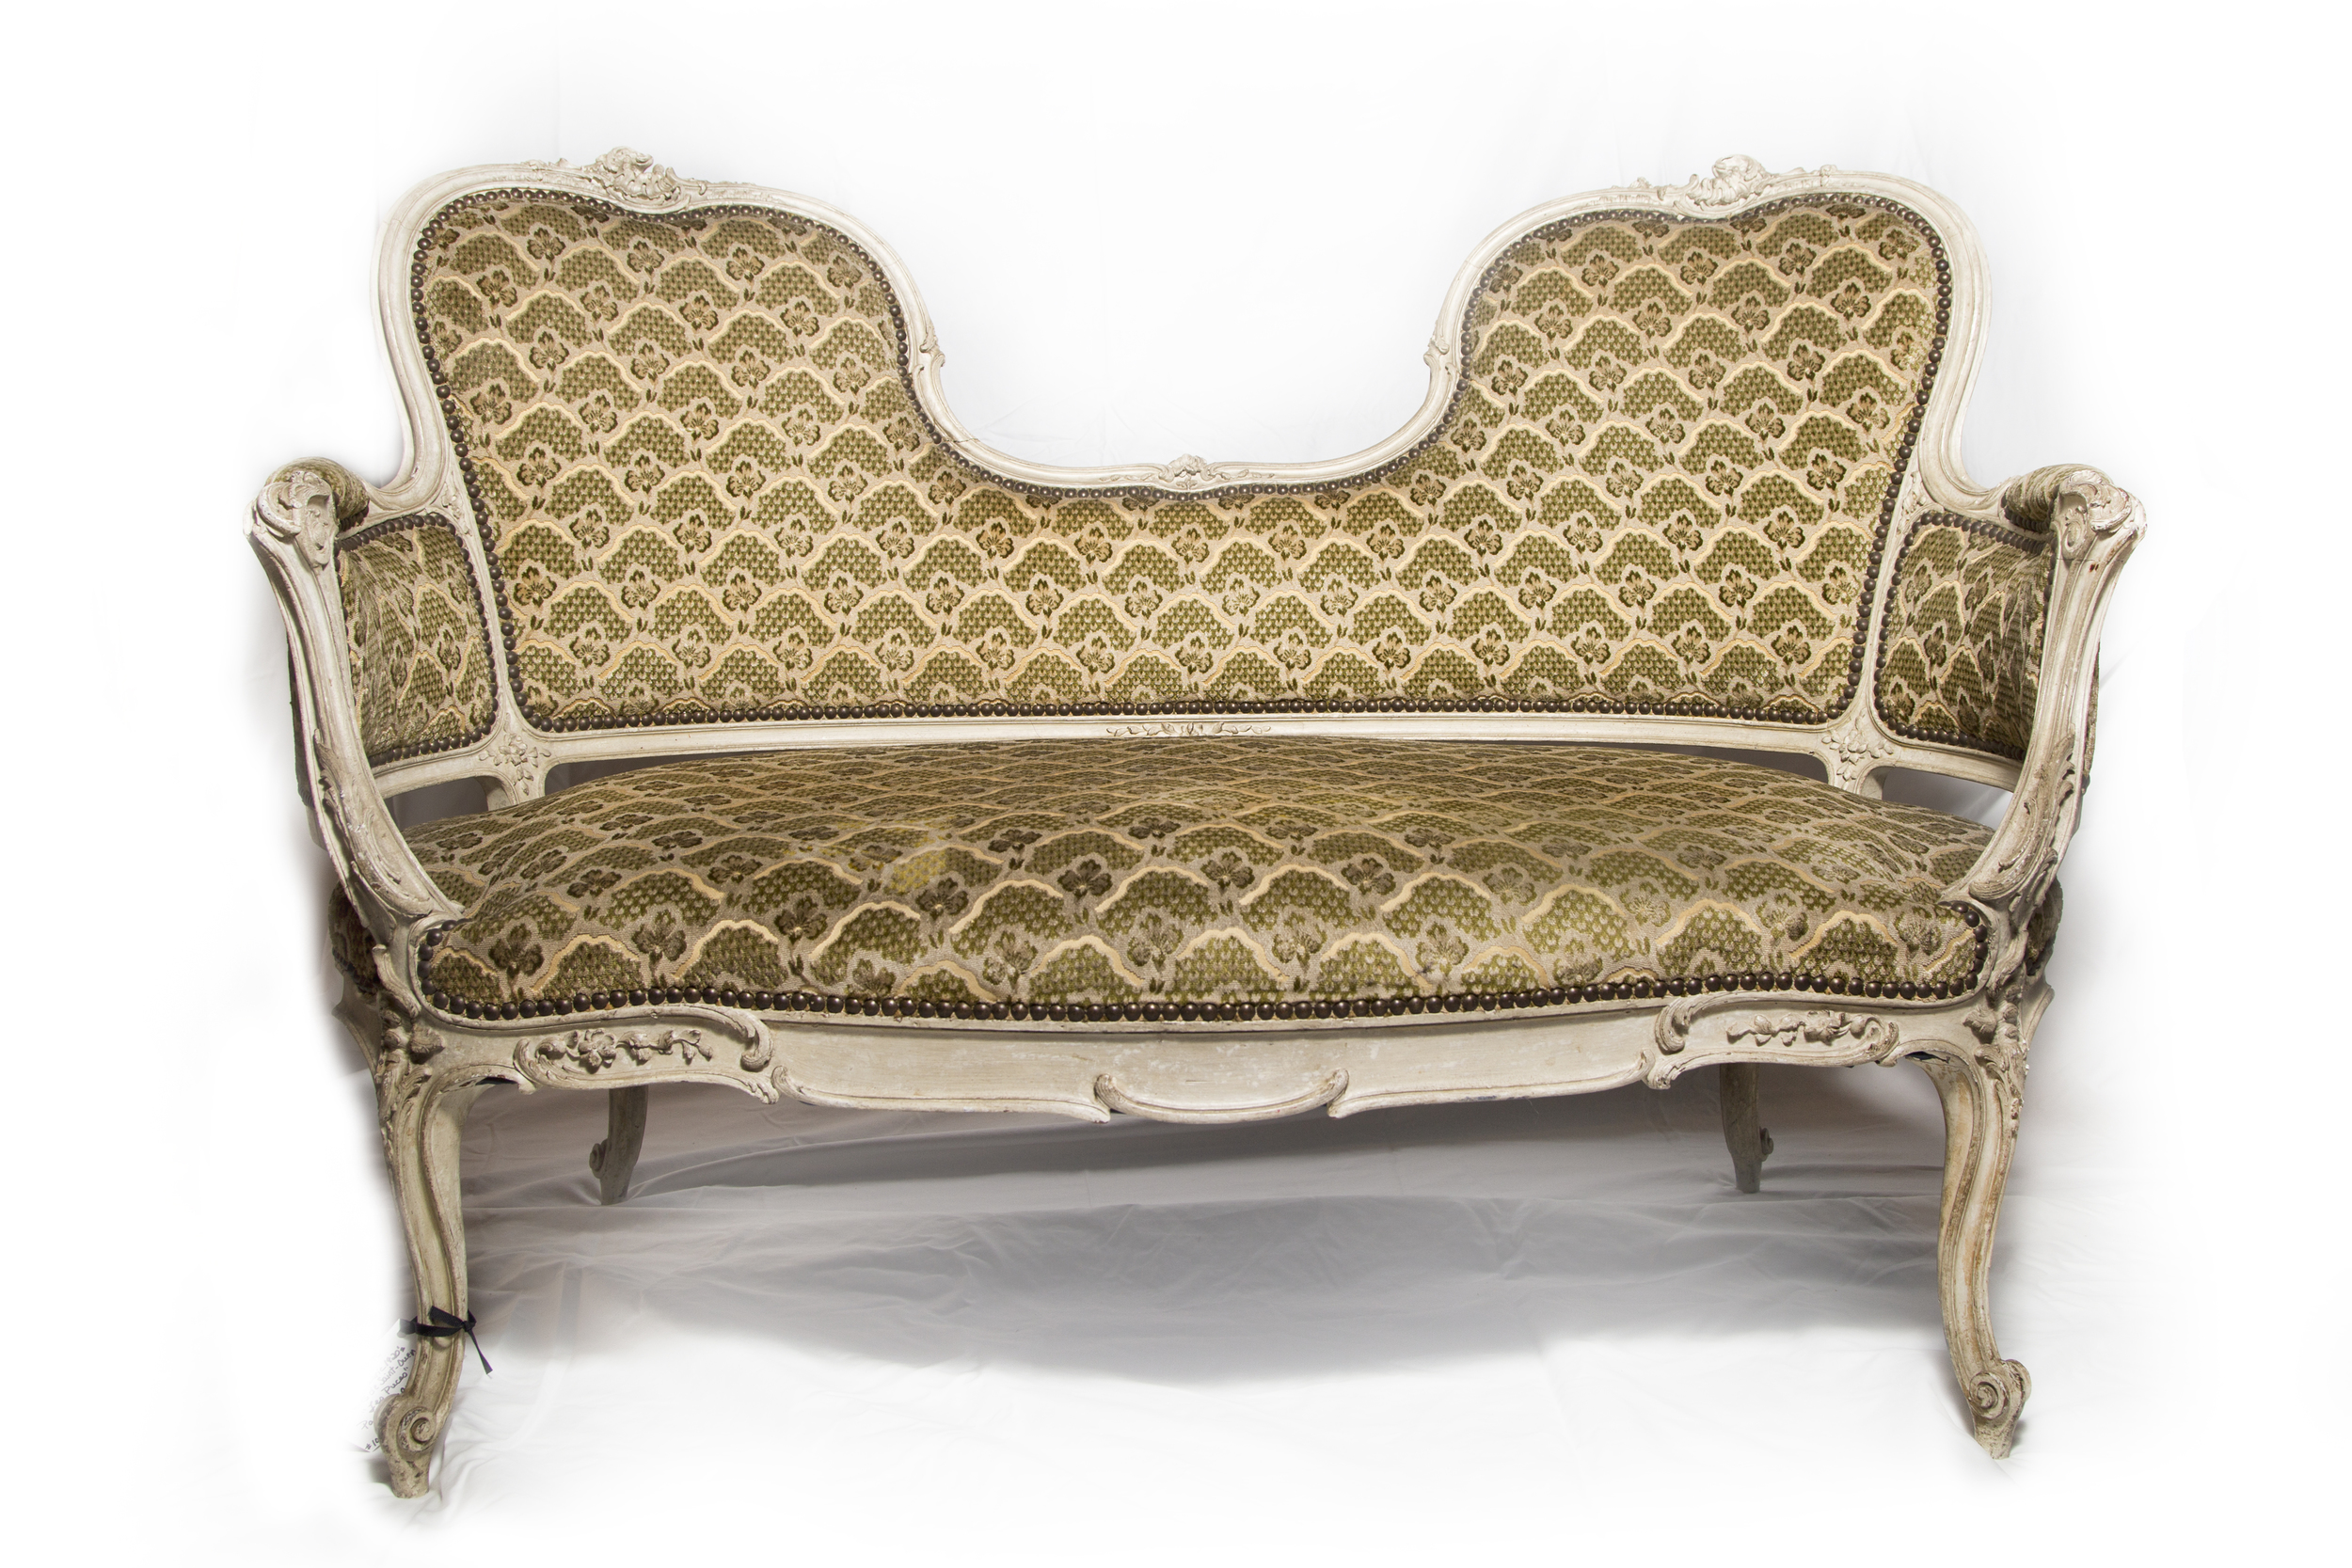 Settee with French repaired cushion. I love the details!